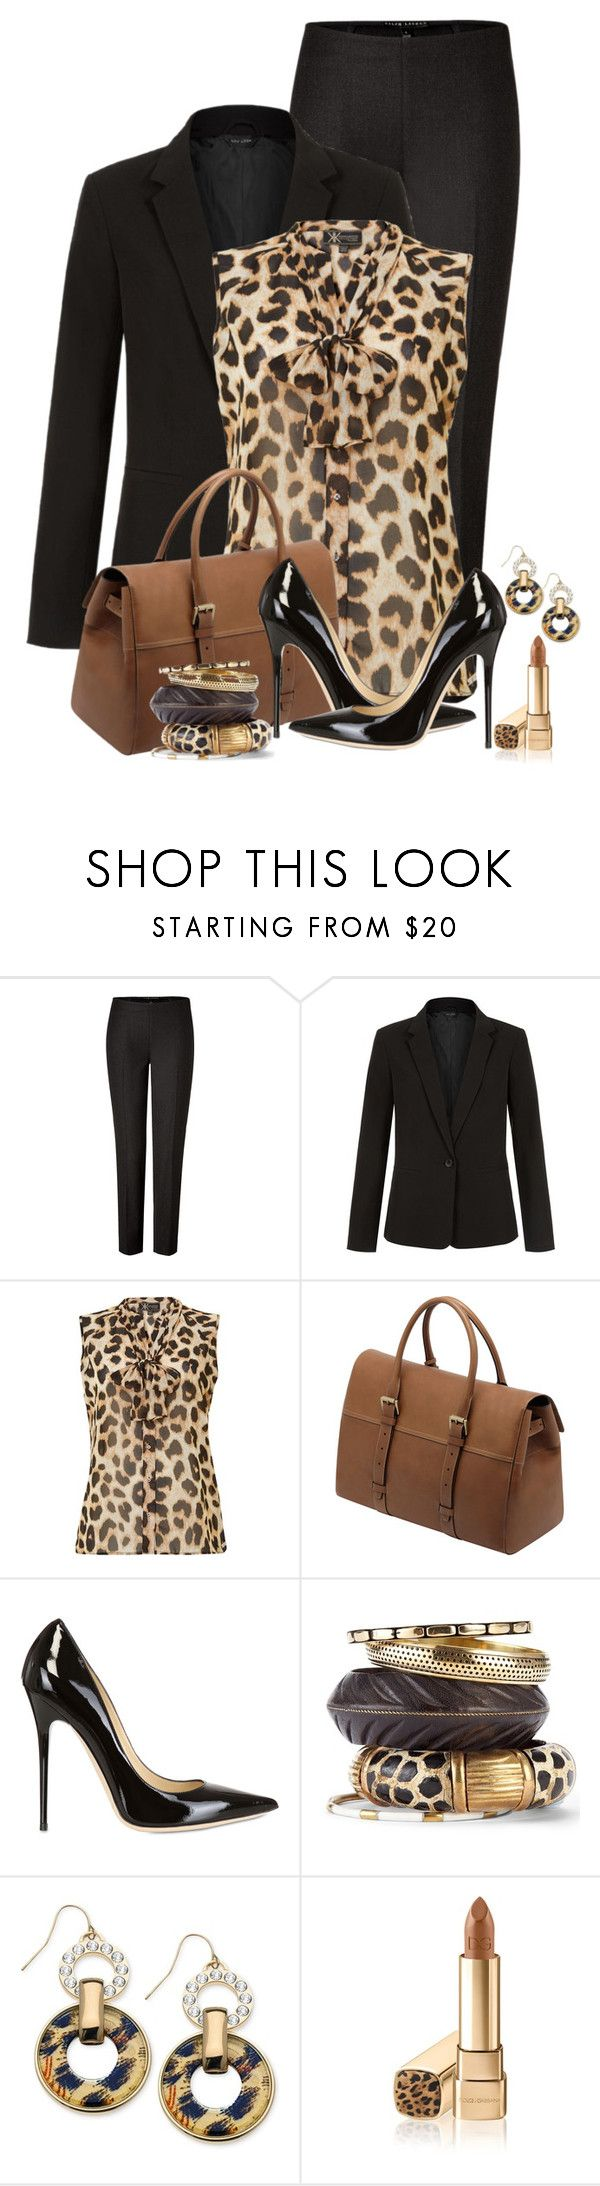 """Blazers on a Budget"" by brendariley-1 ❤ liked on Polyvore featuring Ralph Lauren Black Label, Lipsy, Mulberry, Jimmy Choo, GUESS and Dolce&Gabbana"